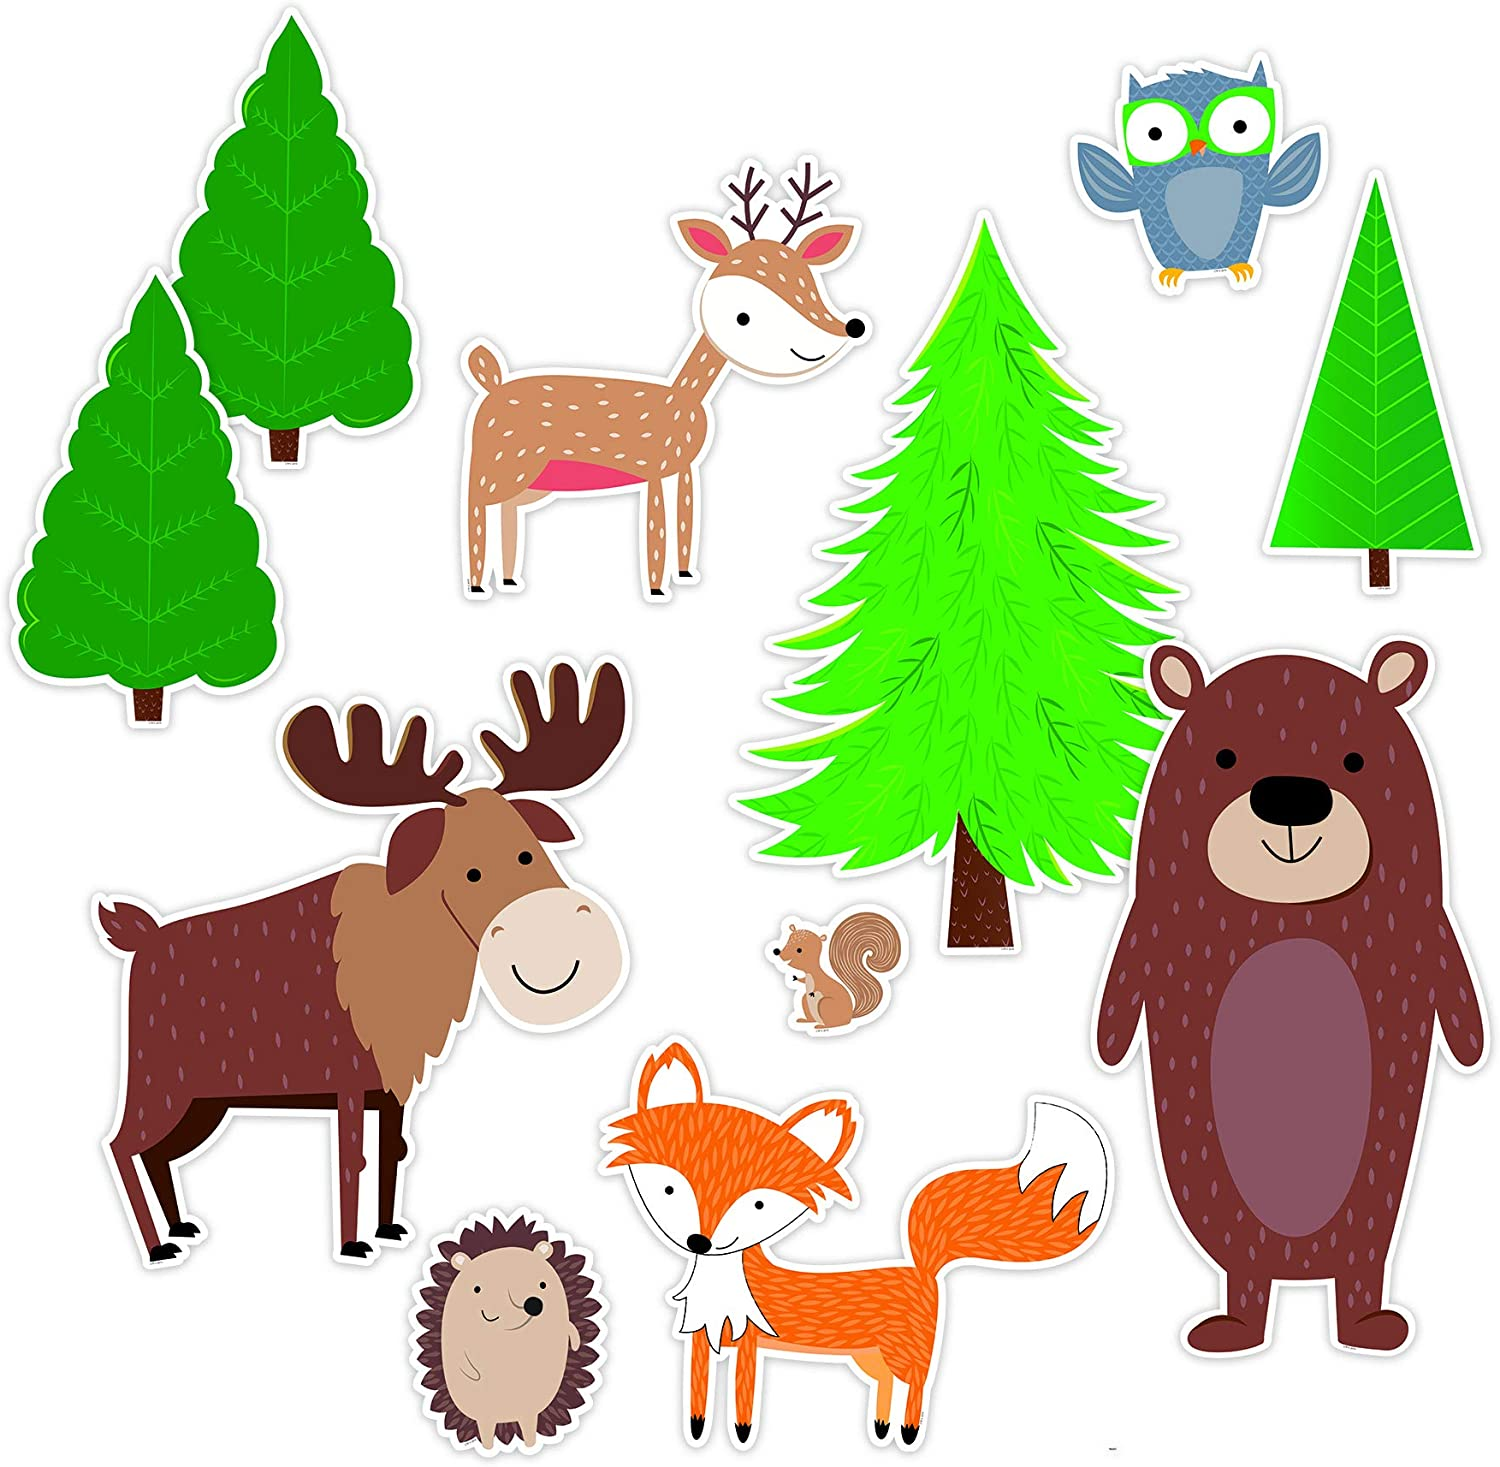 Creative Teaching Press Jumbo Woodland Friends Bulletin Board (Room Displays and Decoration for Classrooms, Learning Spaces and More), Multi (8689)